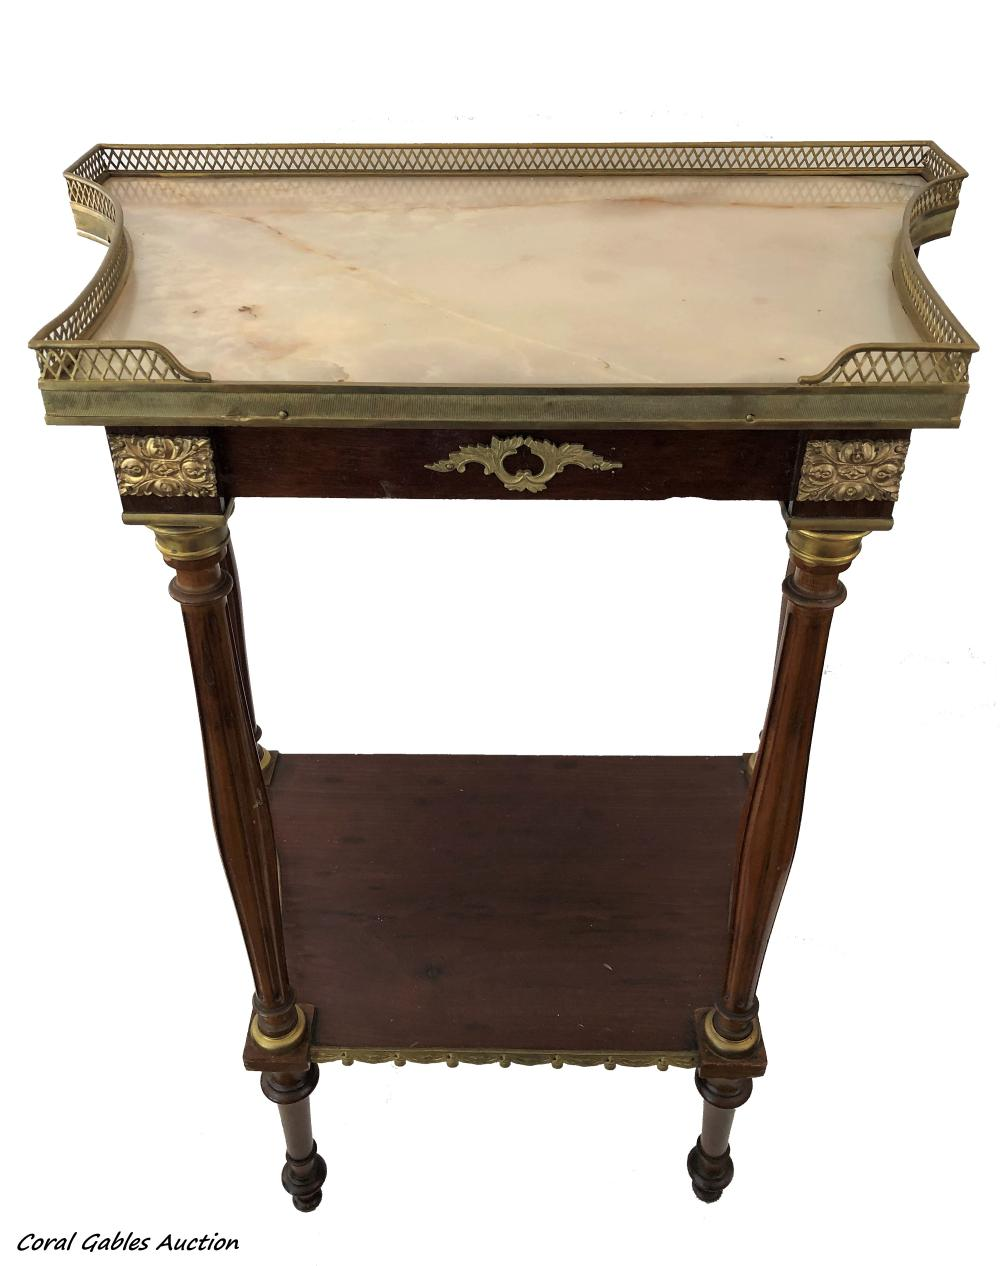 Wood table with bronce and marble on the top